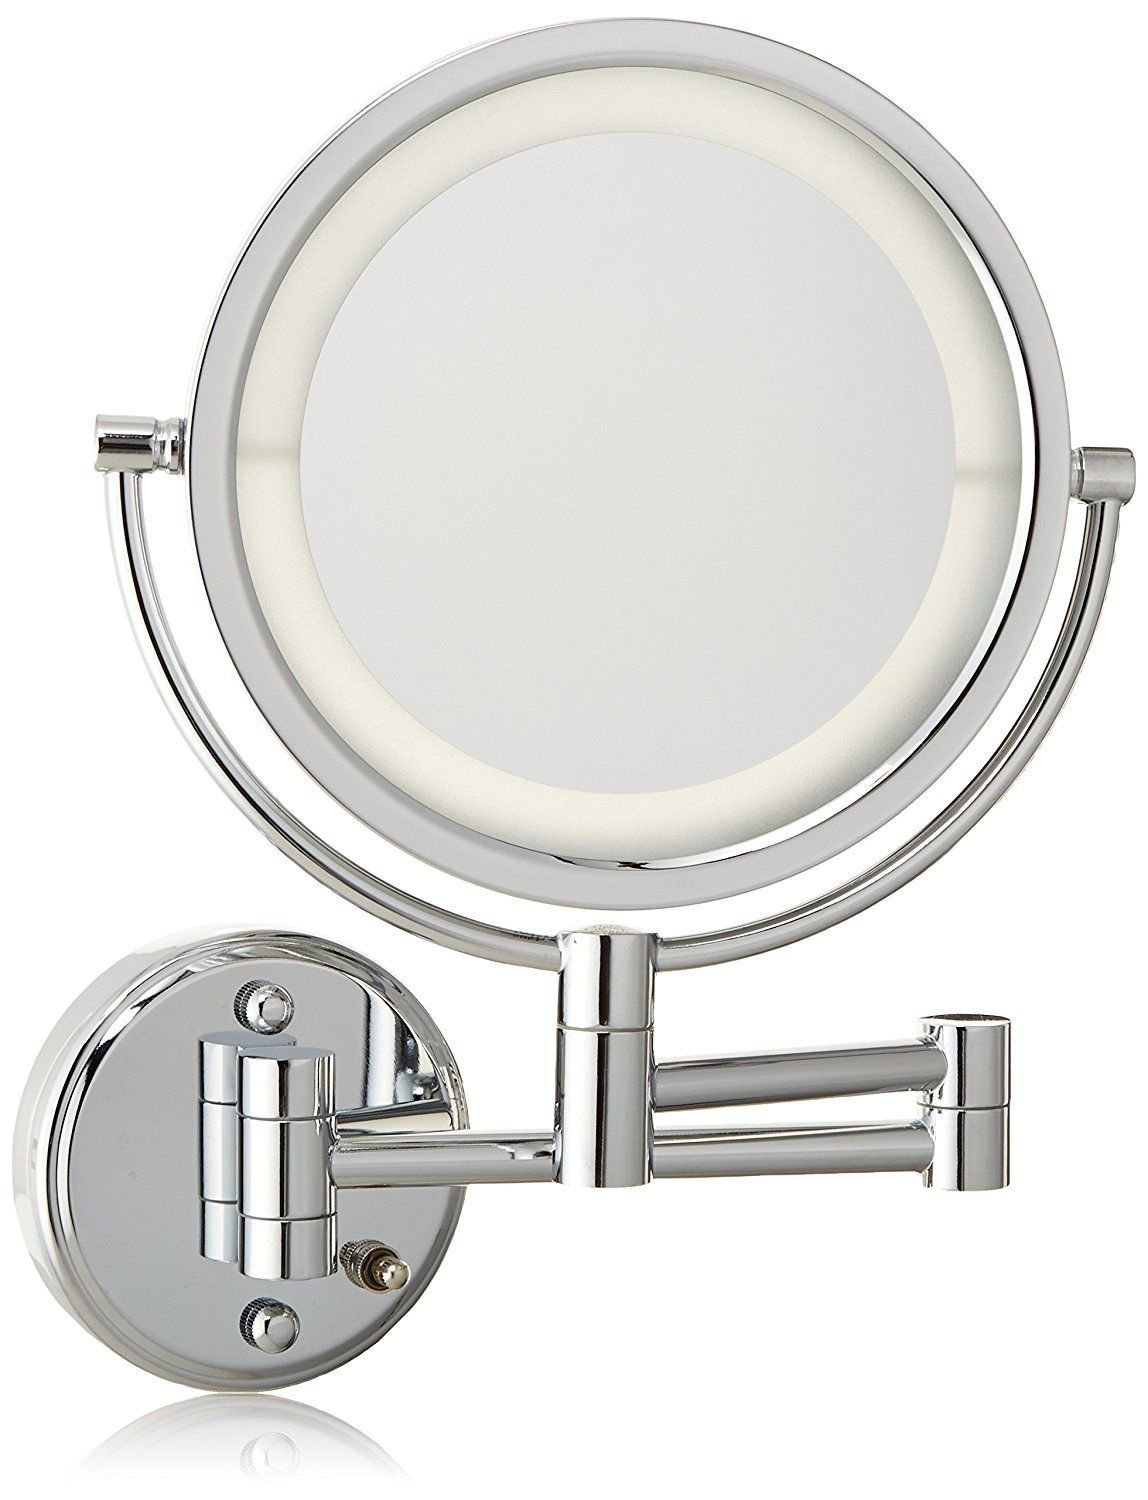 Makeup Mirror,Cosmetic Mirror Makeup 8X Magnification Beauty Girls Women LED Lighted Durable